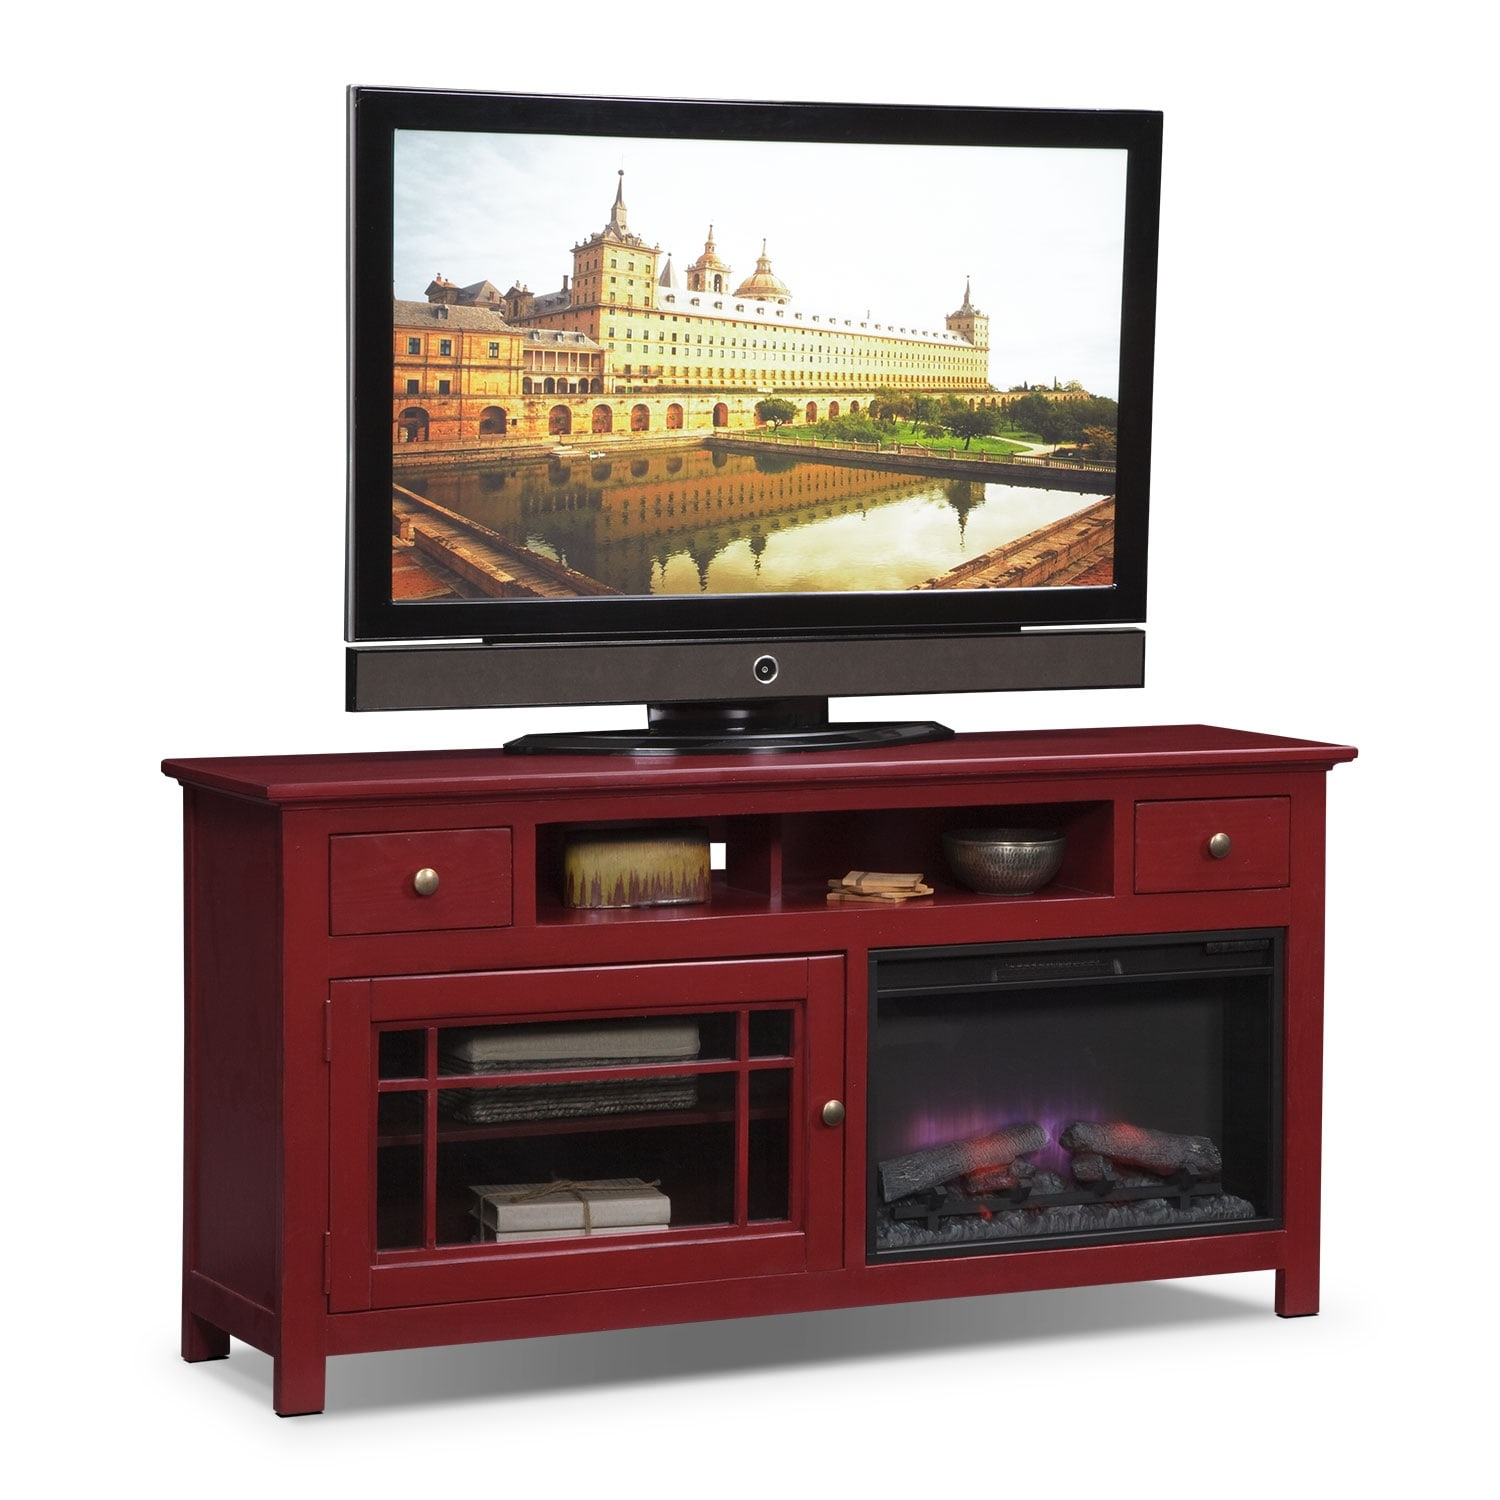 "Entertainment Furniture - Merrick 64"" Fireplace TV Stand with Traditional Insert - Red"